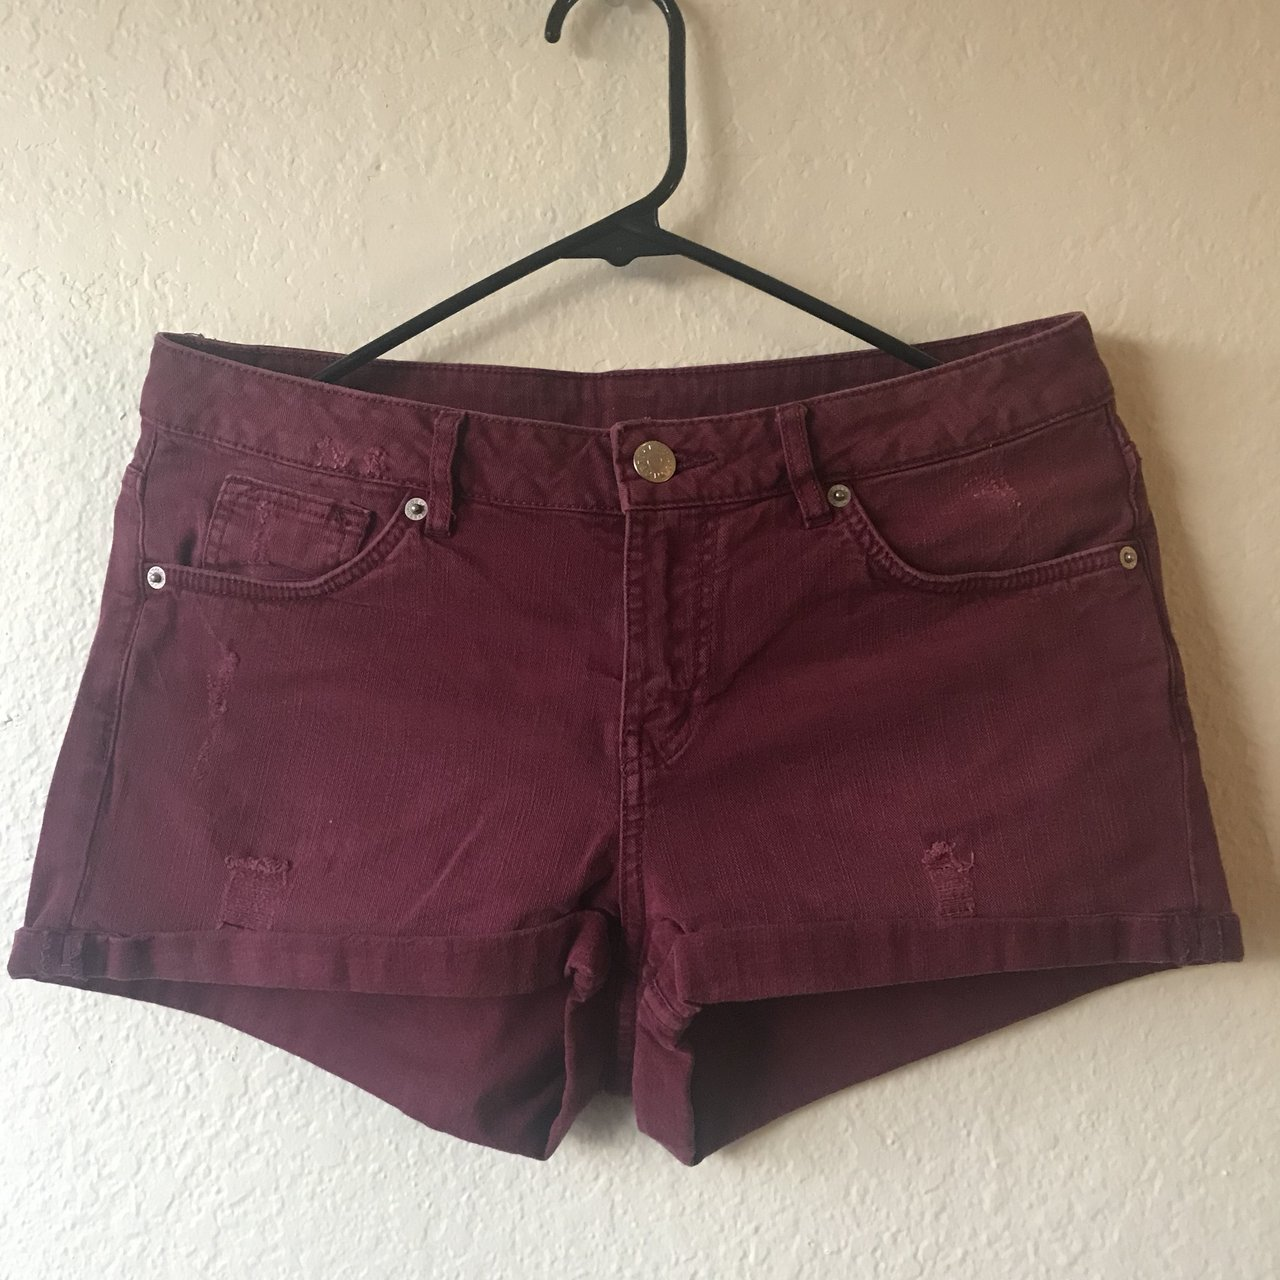 d09d3c0f1 @daycasa. 26 days ago. San Diego, United States. Burgundy denim shorts from  h&m ...